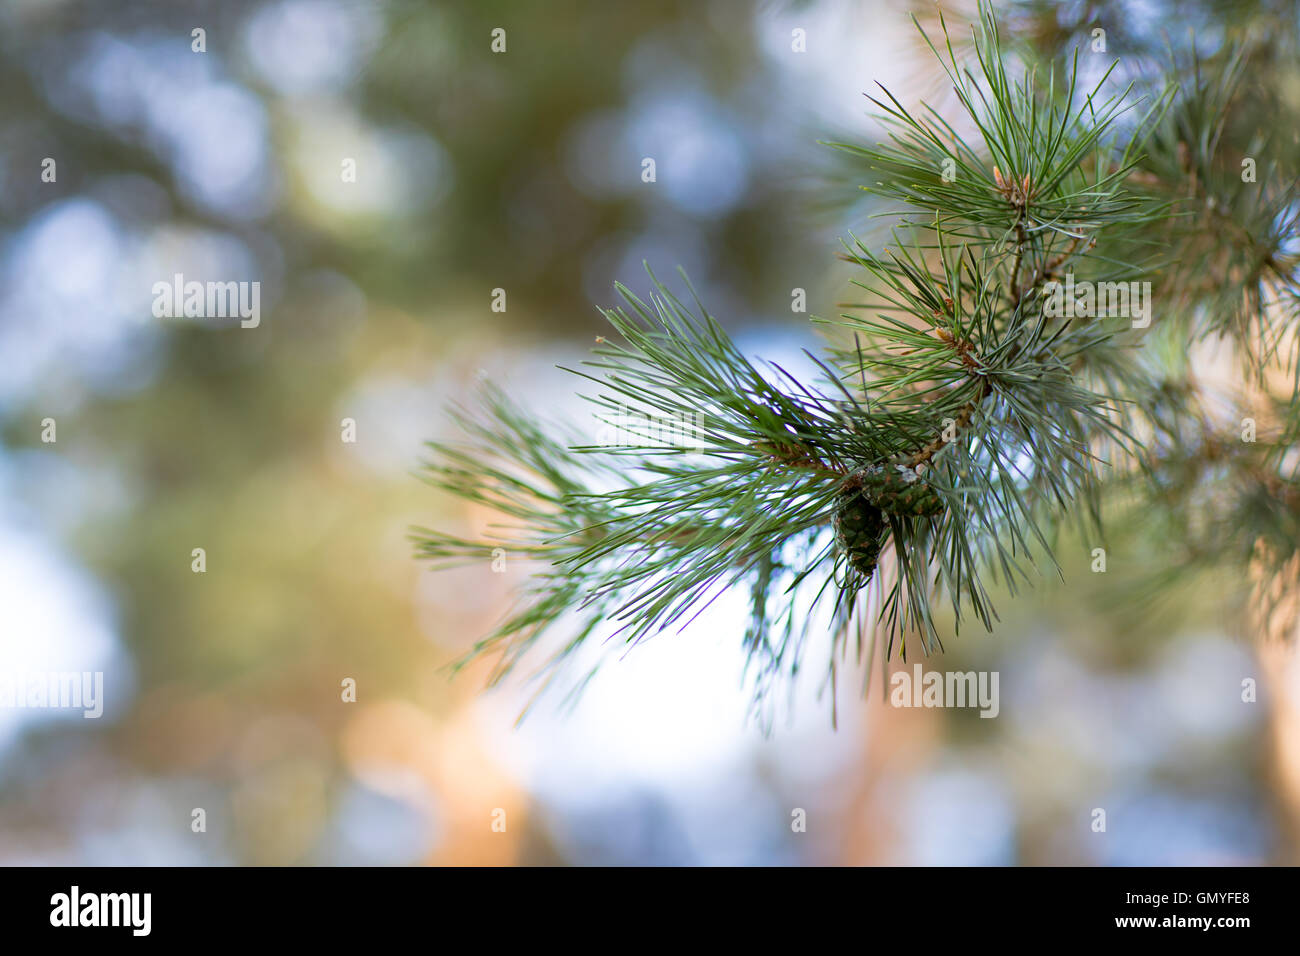 Pine tree branch close-up. - Stock Image